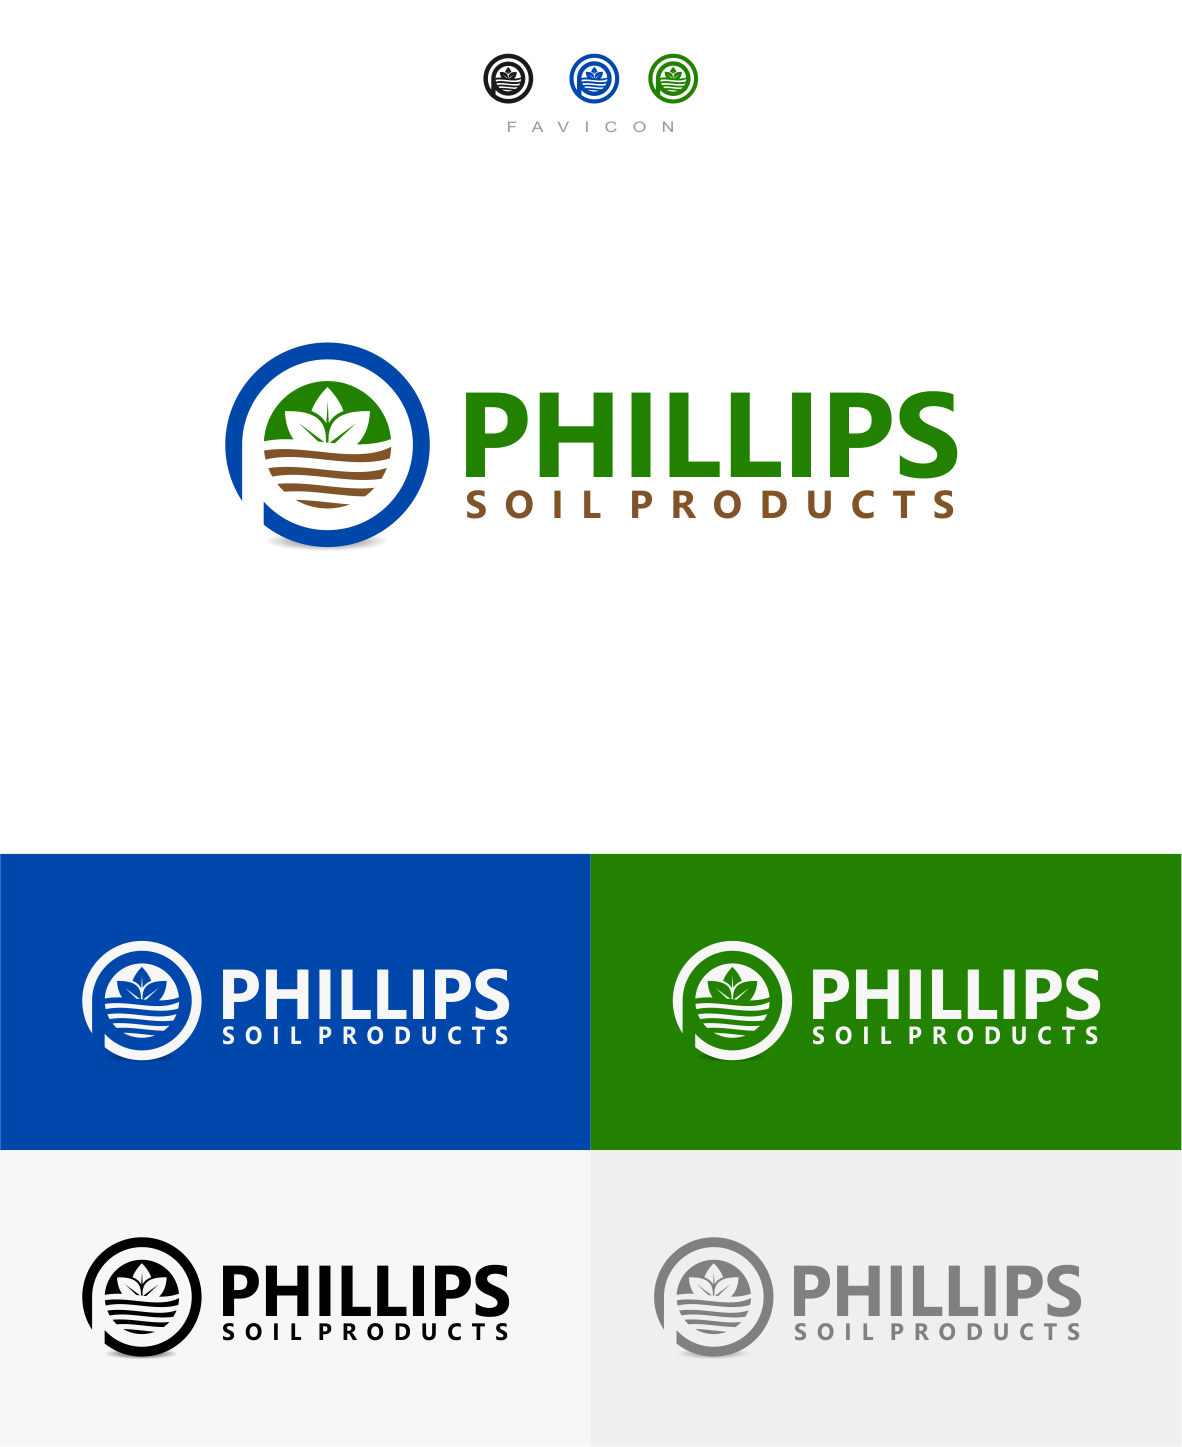 Logo design for top quality potting soil company working in an exploding market place.